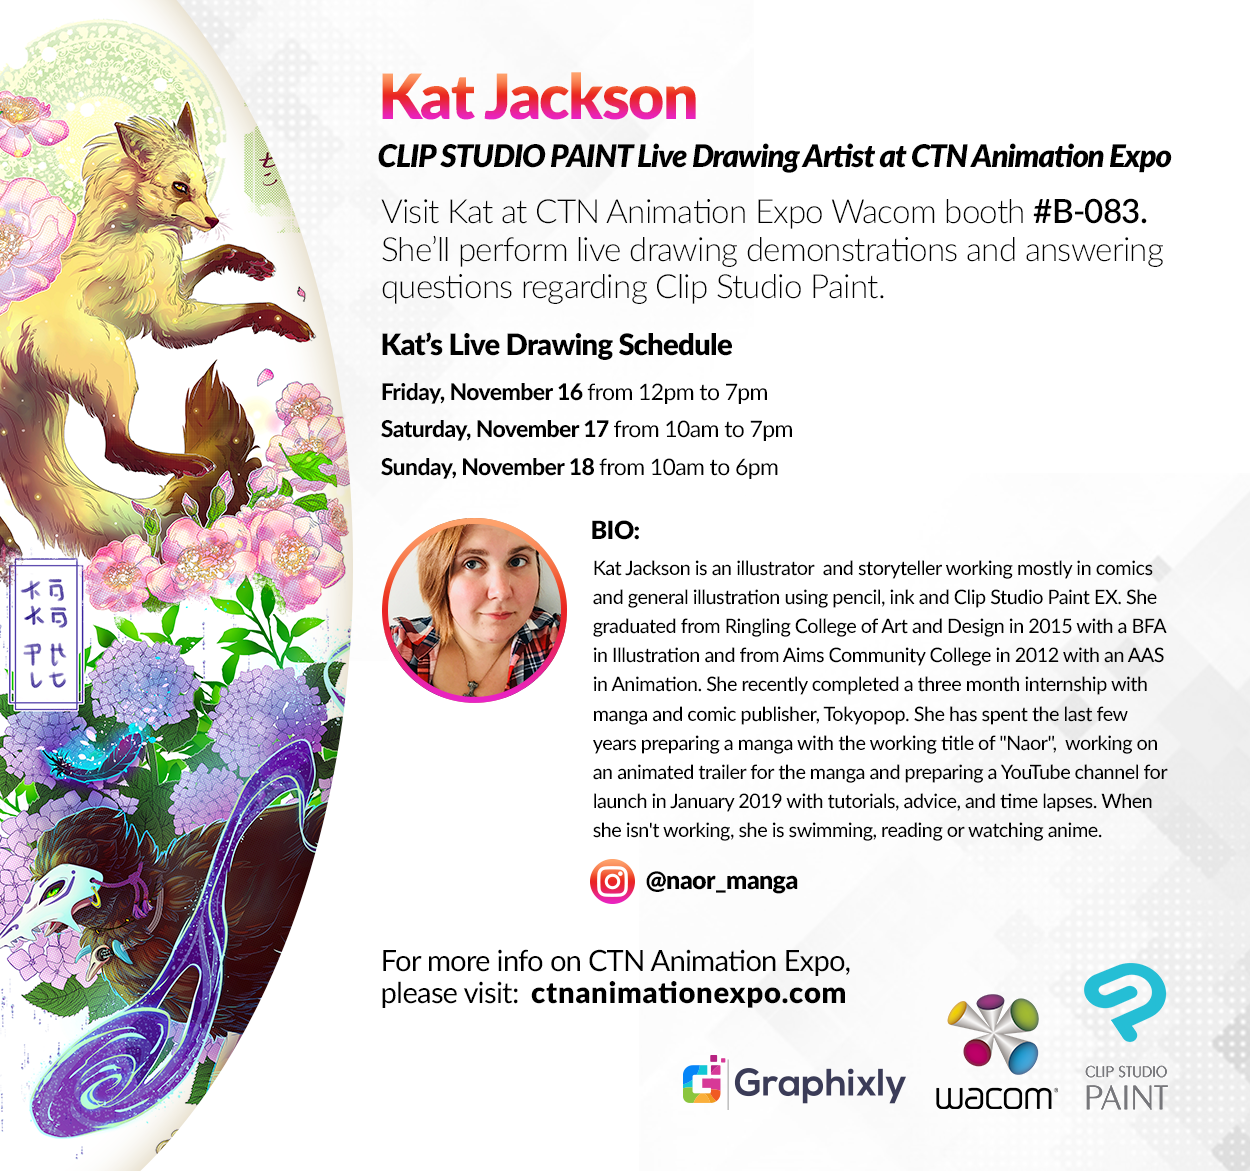 CTN Animation Expo - Live Drawing Artist - Kat Jackson